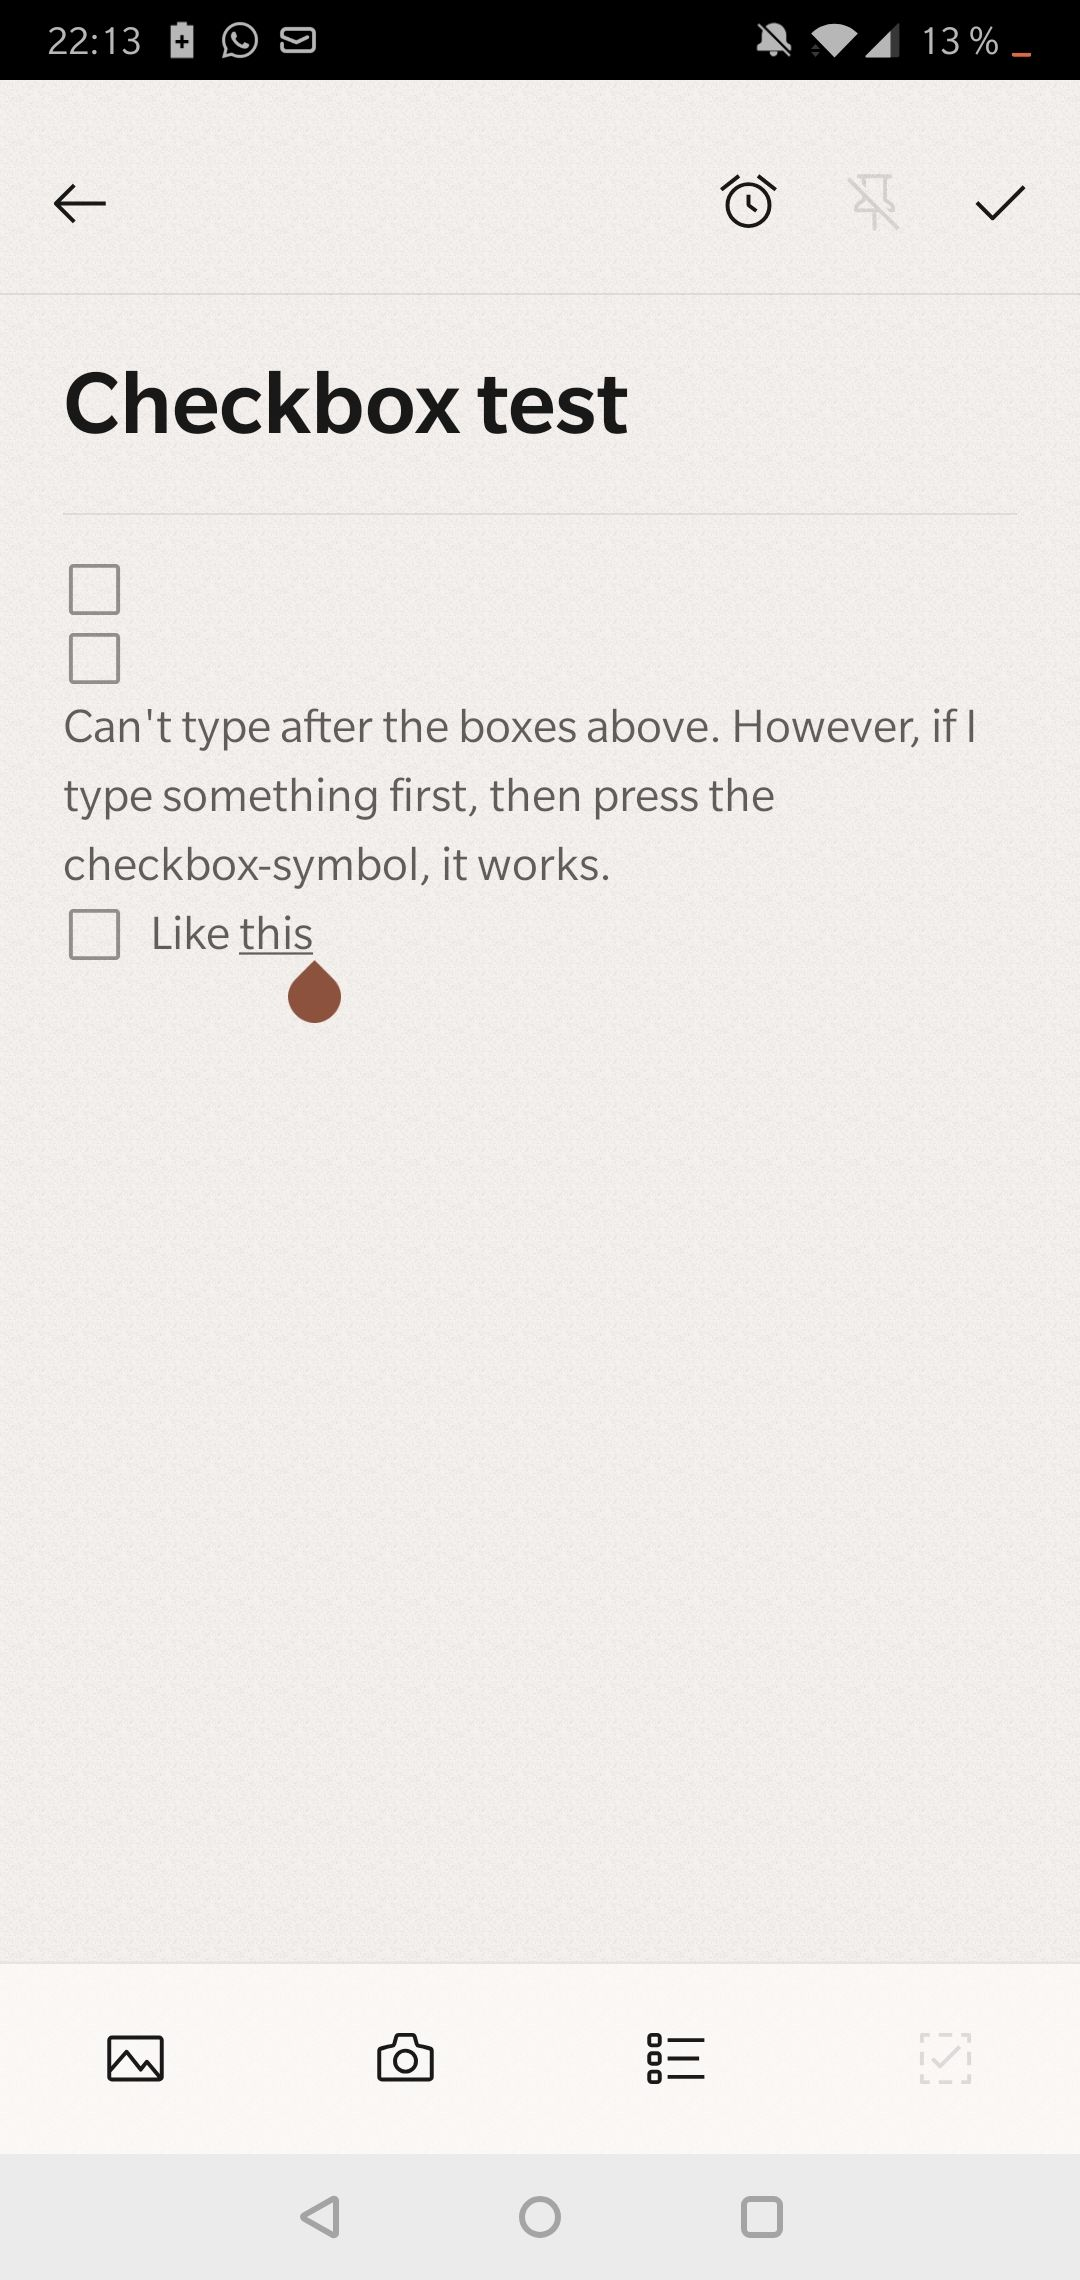 Notes checkbox bug - can't type after inserting checkbox